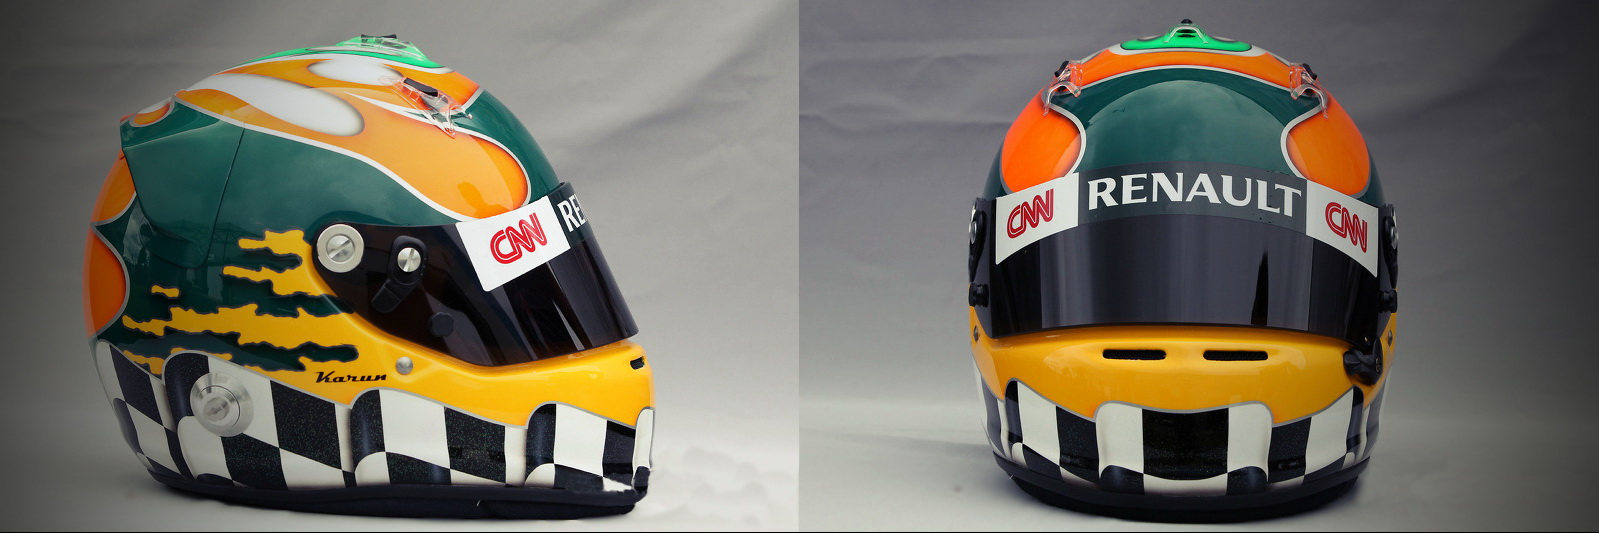 Шлем Каруна Чандхока на сезон 2011 года | 2011 helmet of Karun Chandhok